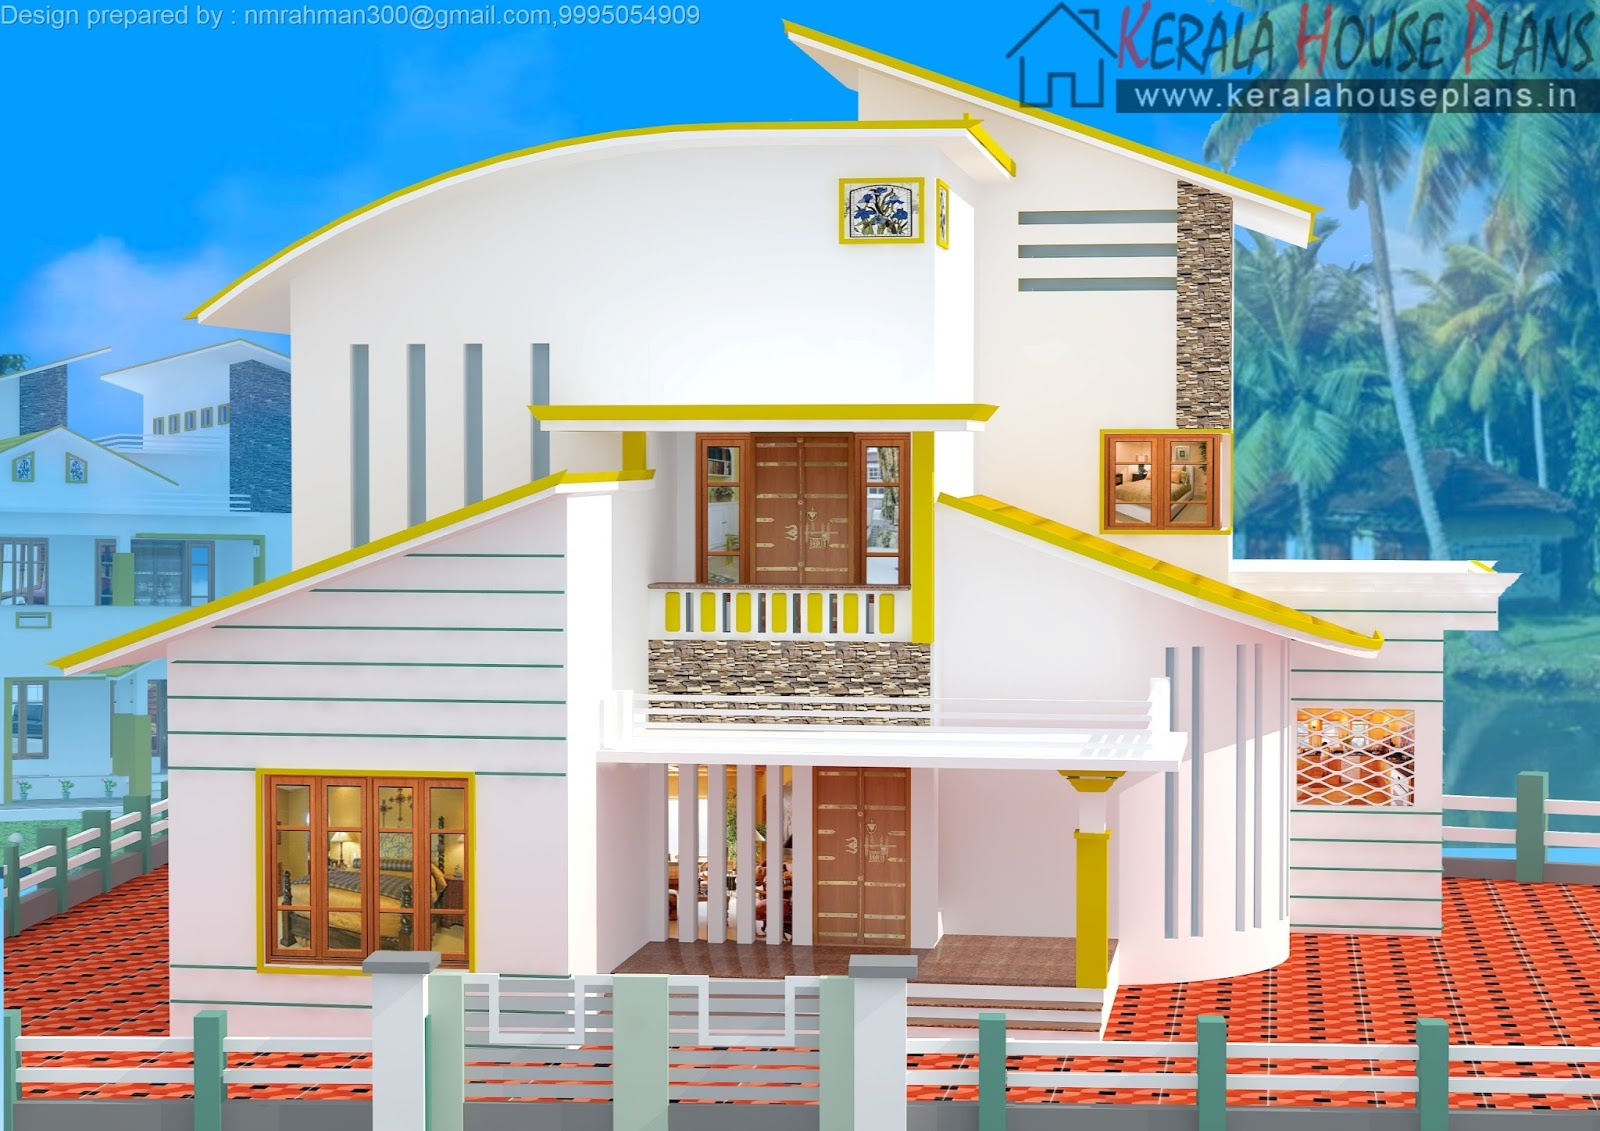 1669 sq.ft Kerala Modern Curved roof House Design